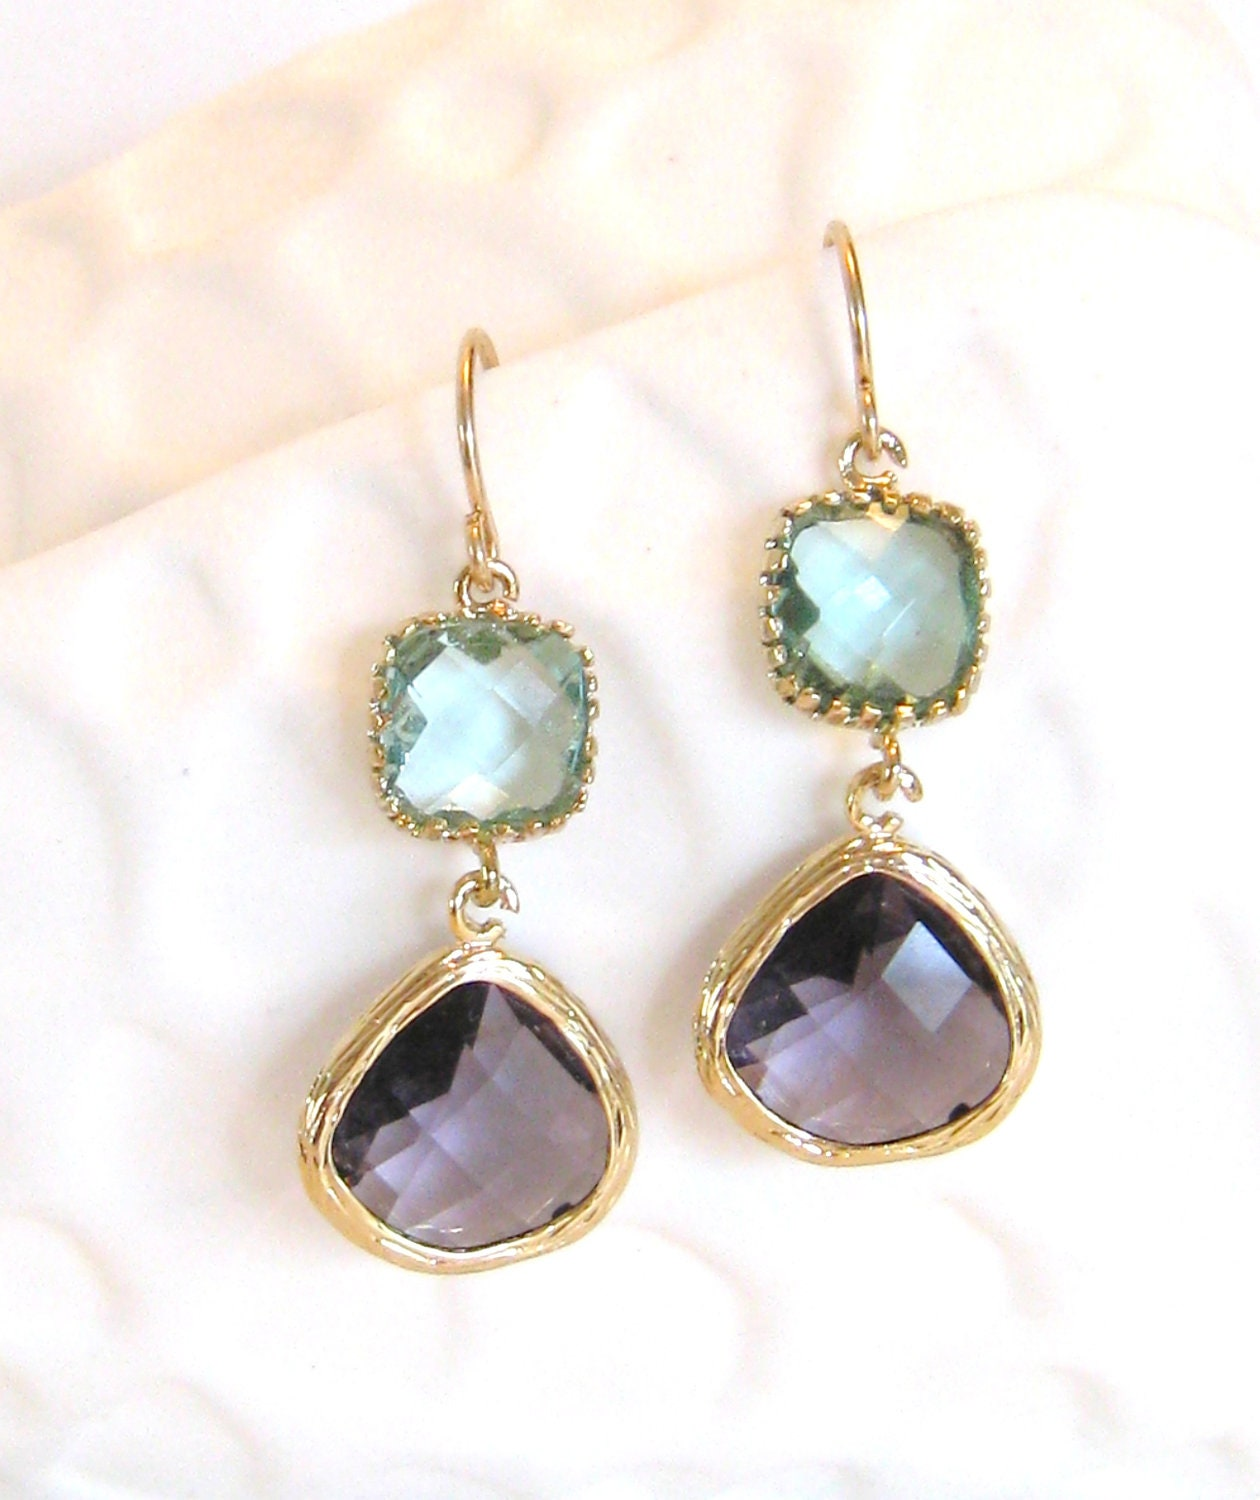 purple earrings aqua earrings gold earrings by loveshinebridal. Black Bedroom Furniture Sets. Home Design Ideas